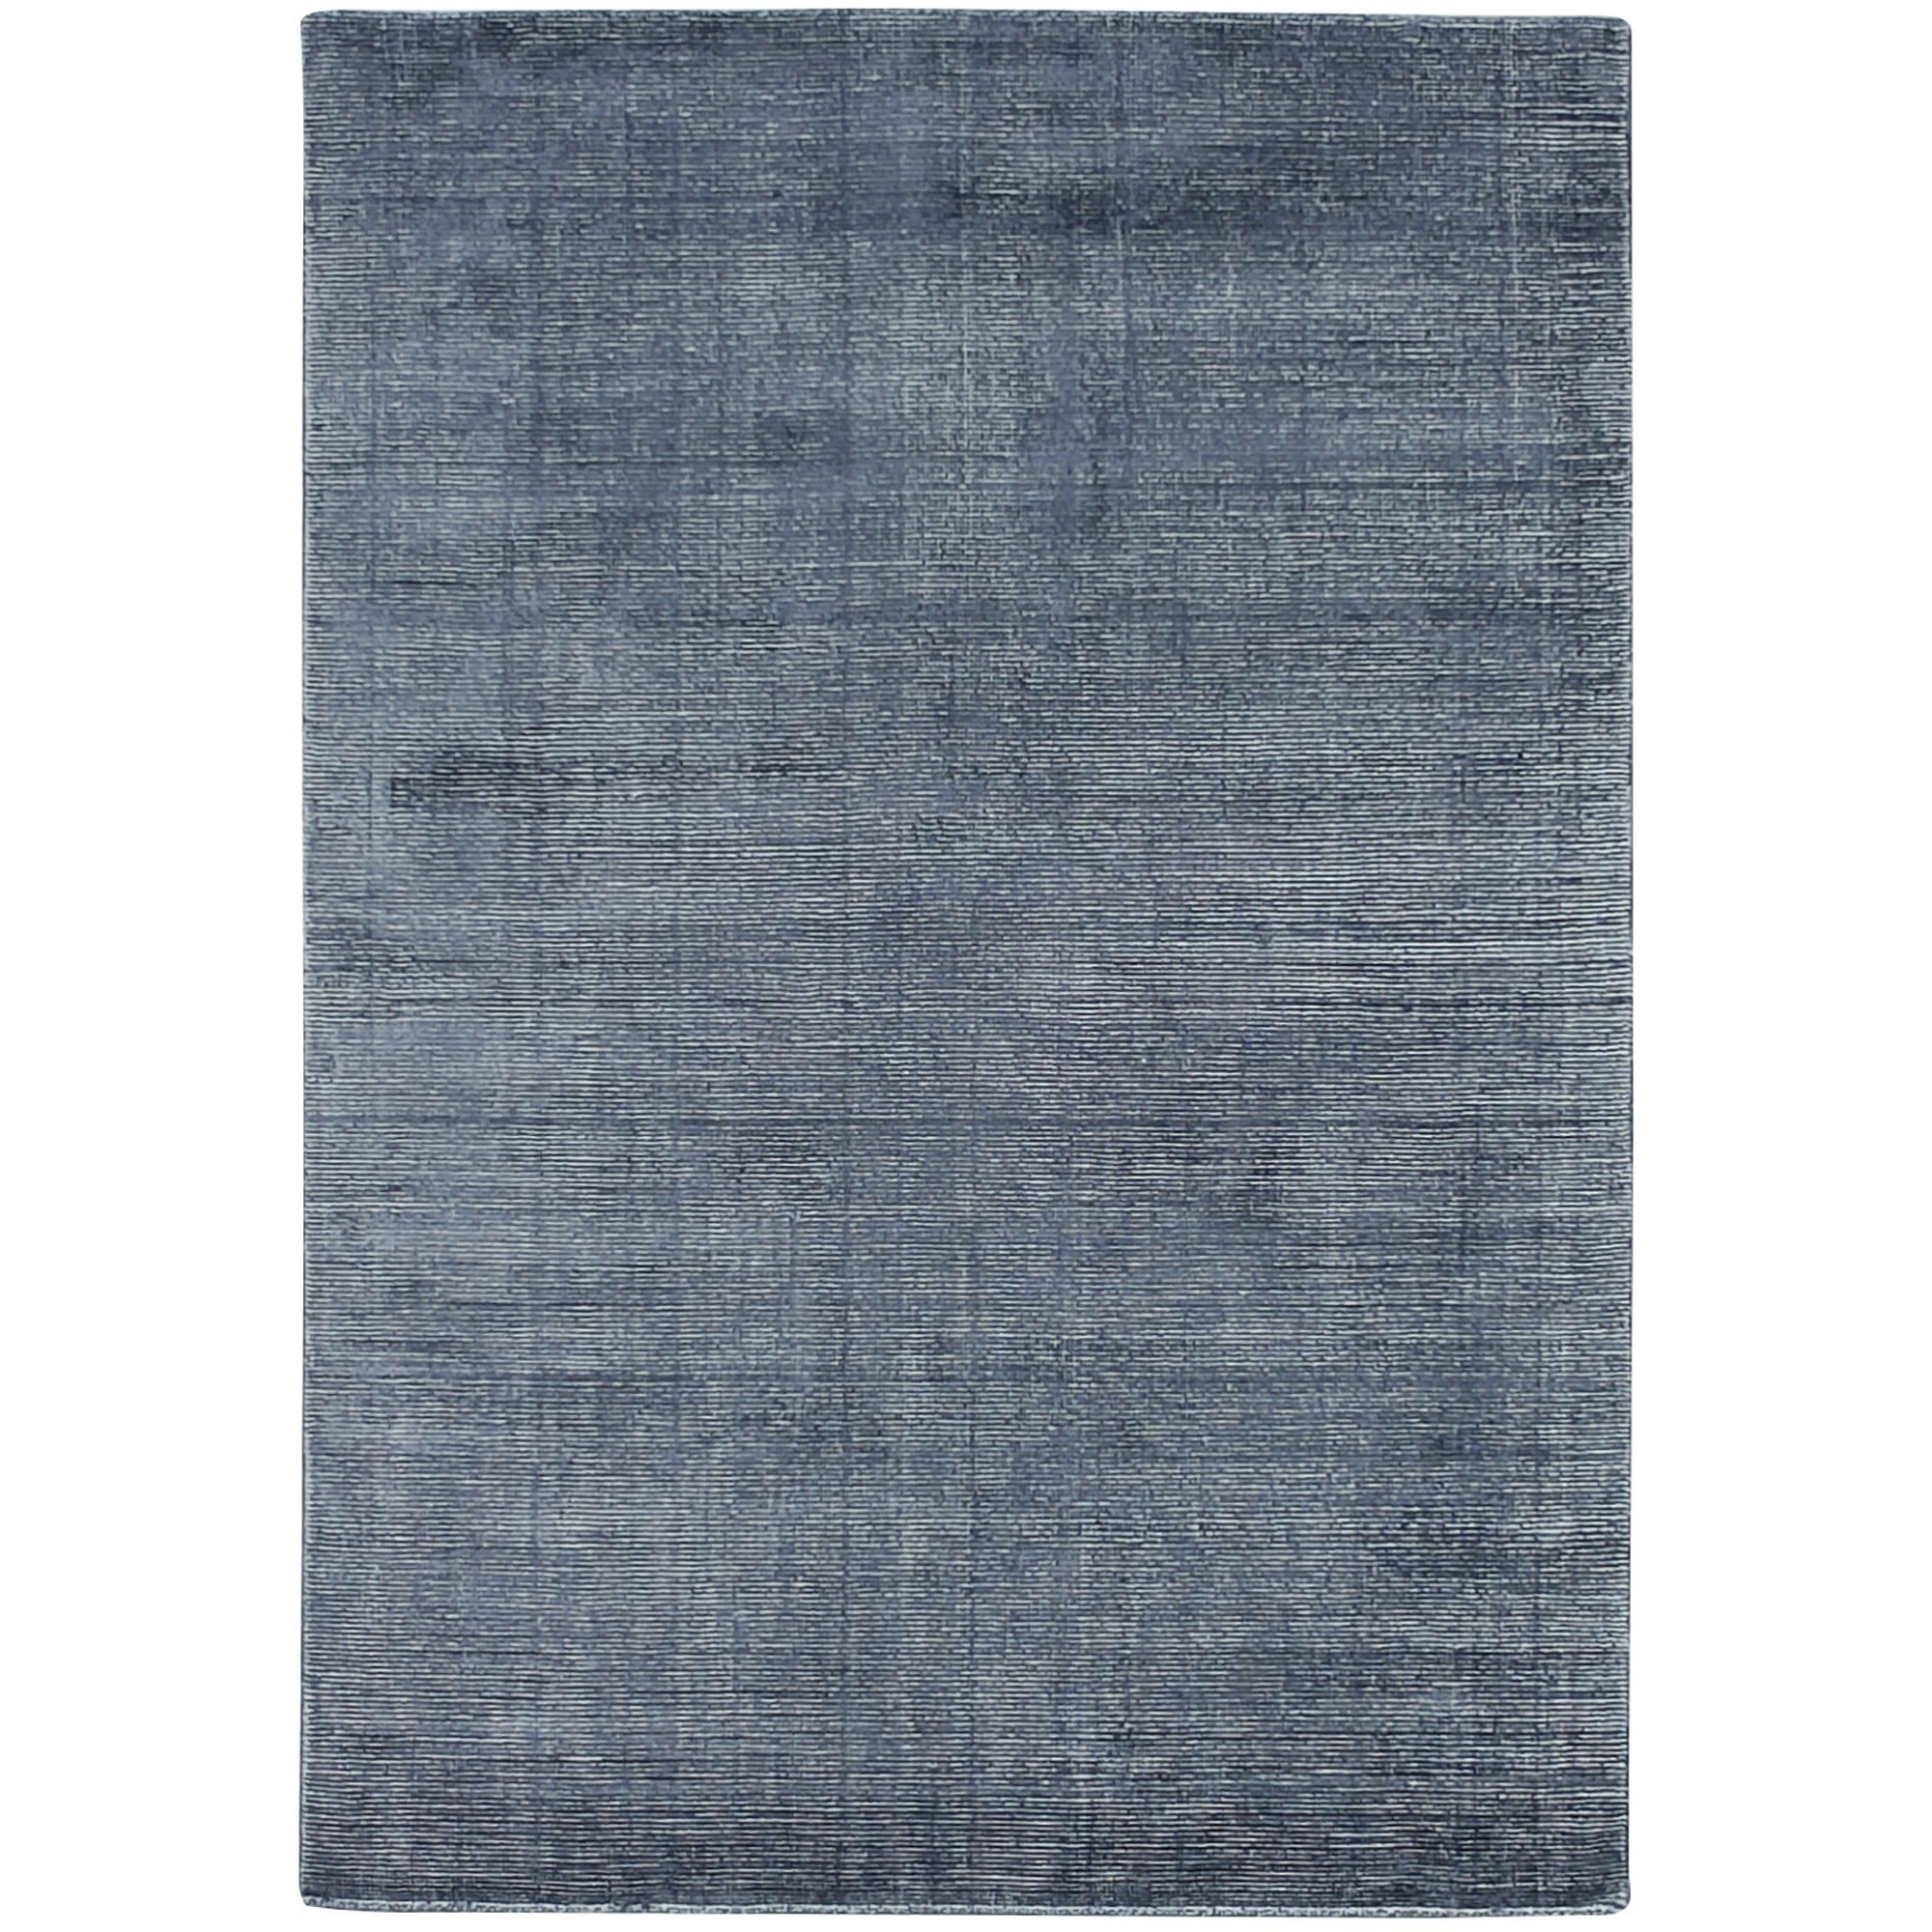 Elements Hand Knotted Wool Rug, 160x230cm, Blue